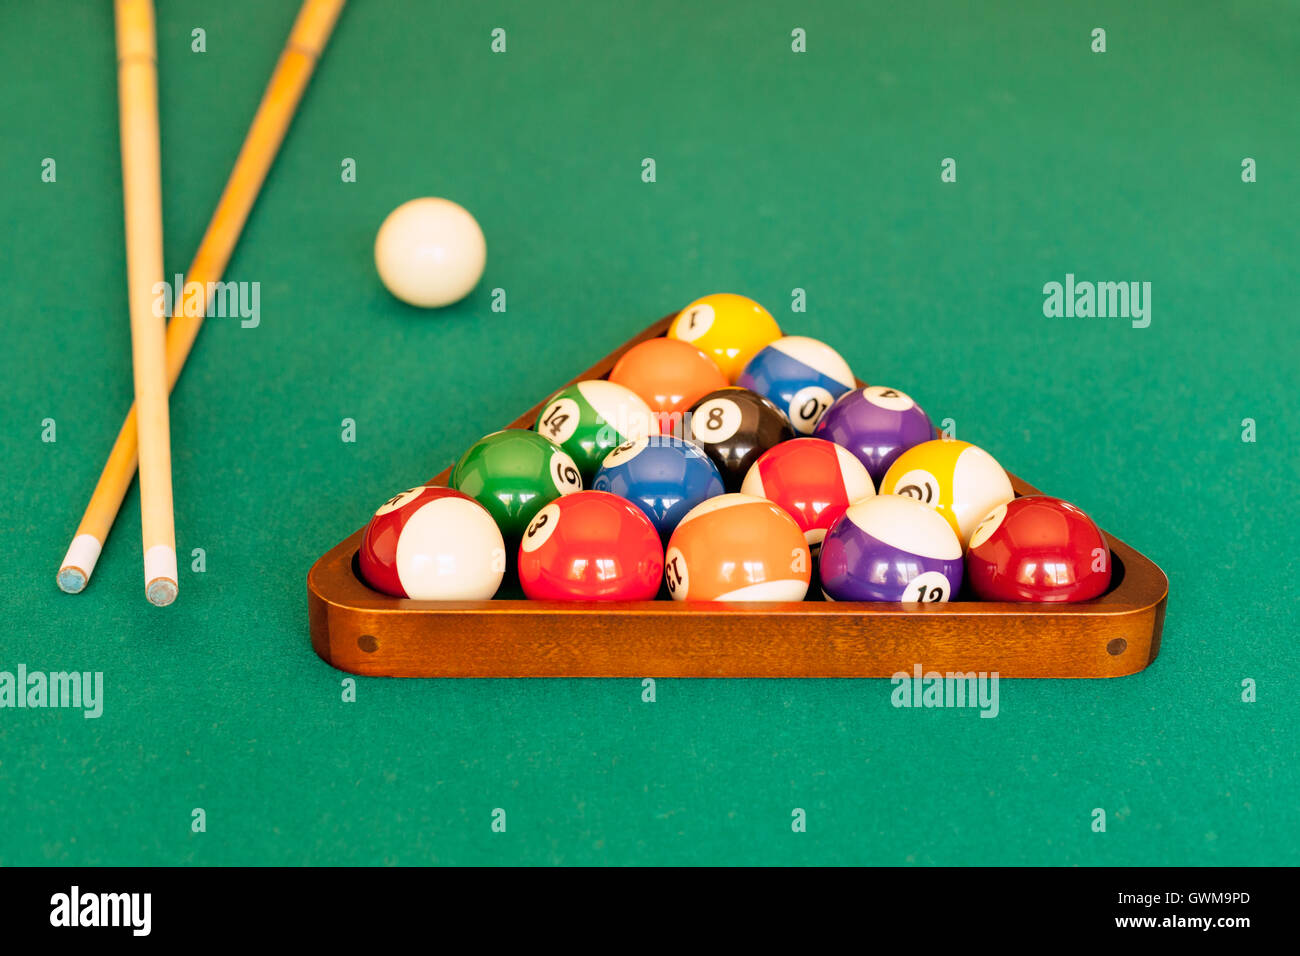 Pool cue sticks, a cue ball and a rack of balls ready for a game of eight-ball pool. Stock Photo